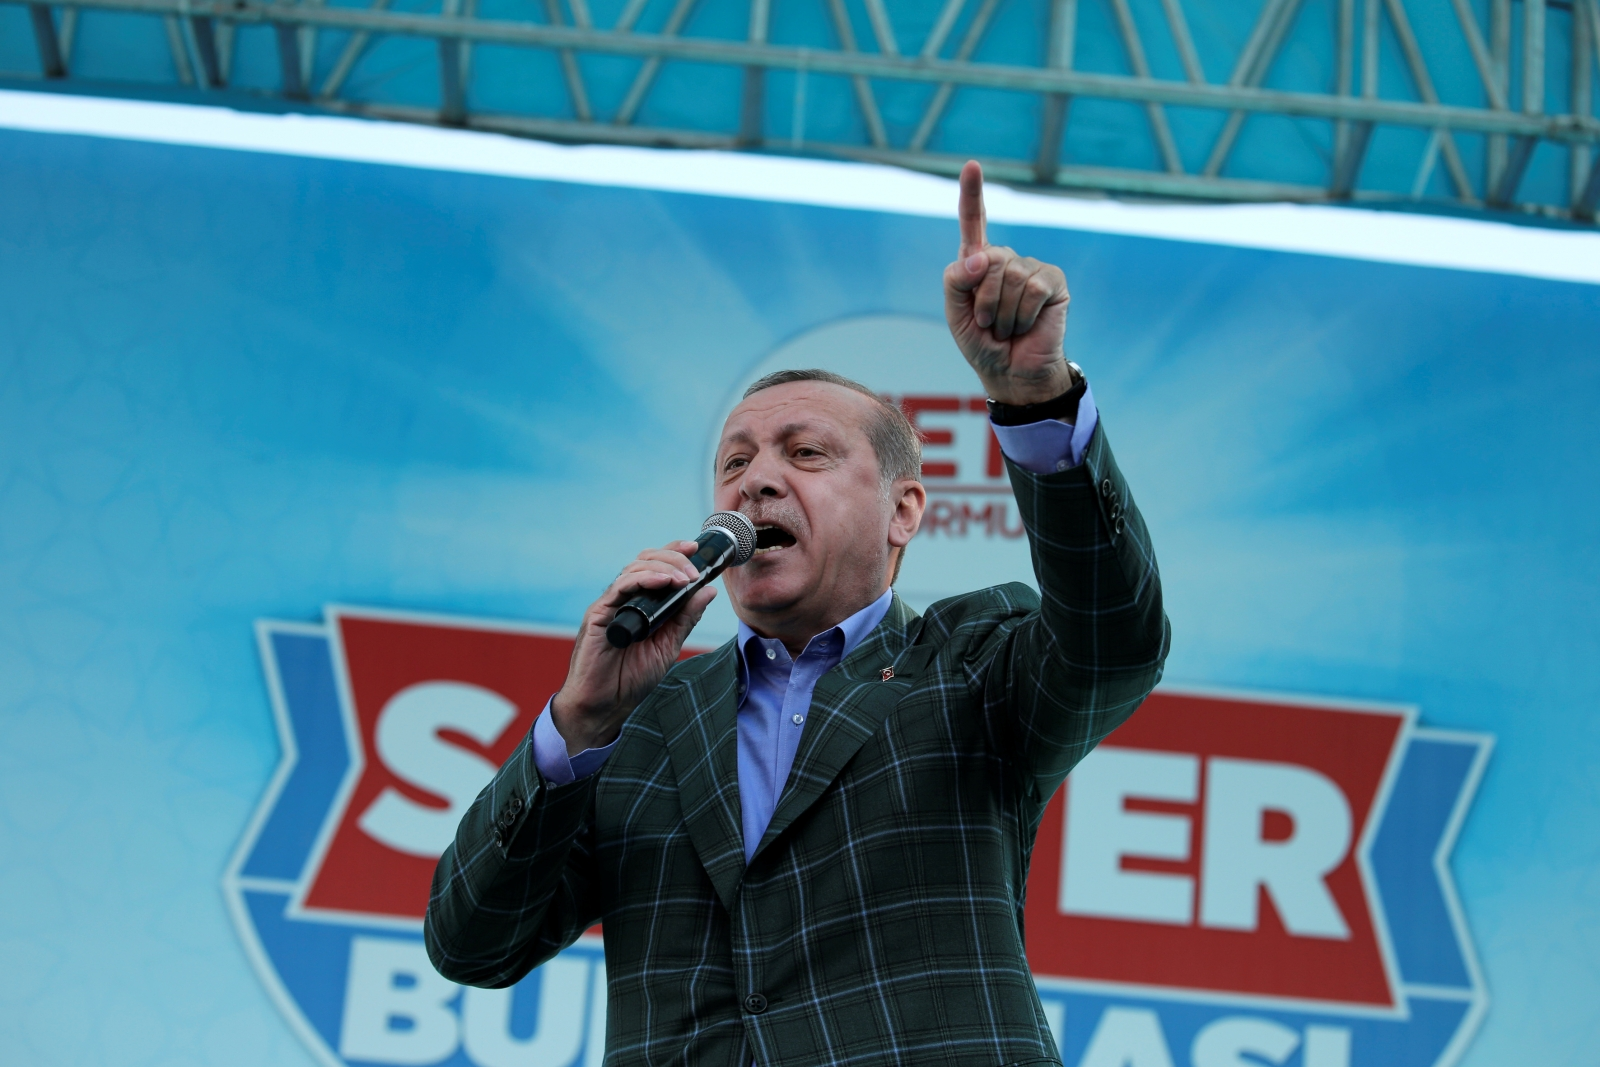 Turkey referendum: Campaign on Erdogan powers 'unequal'